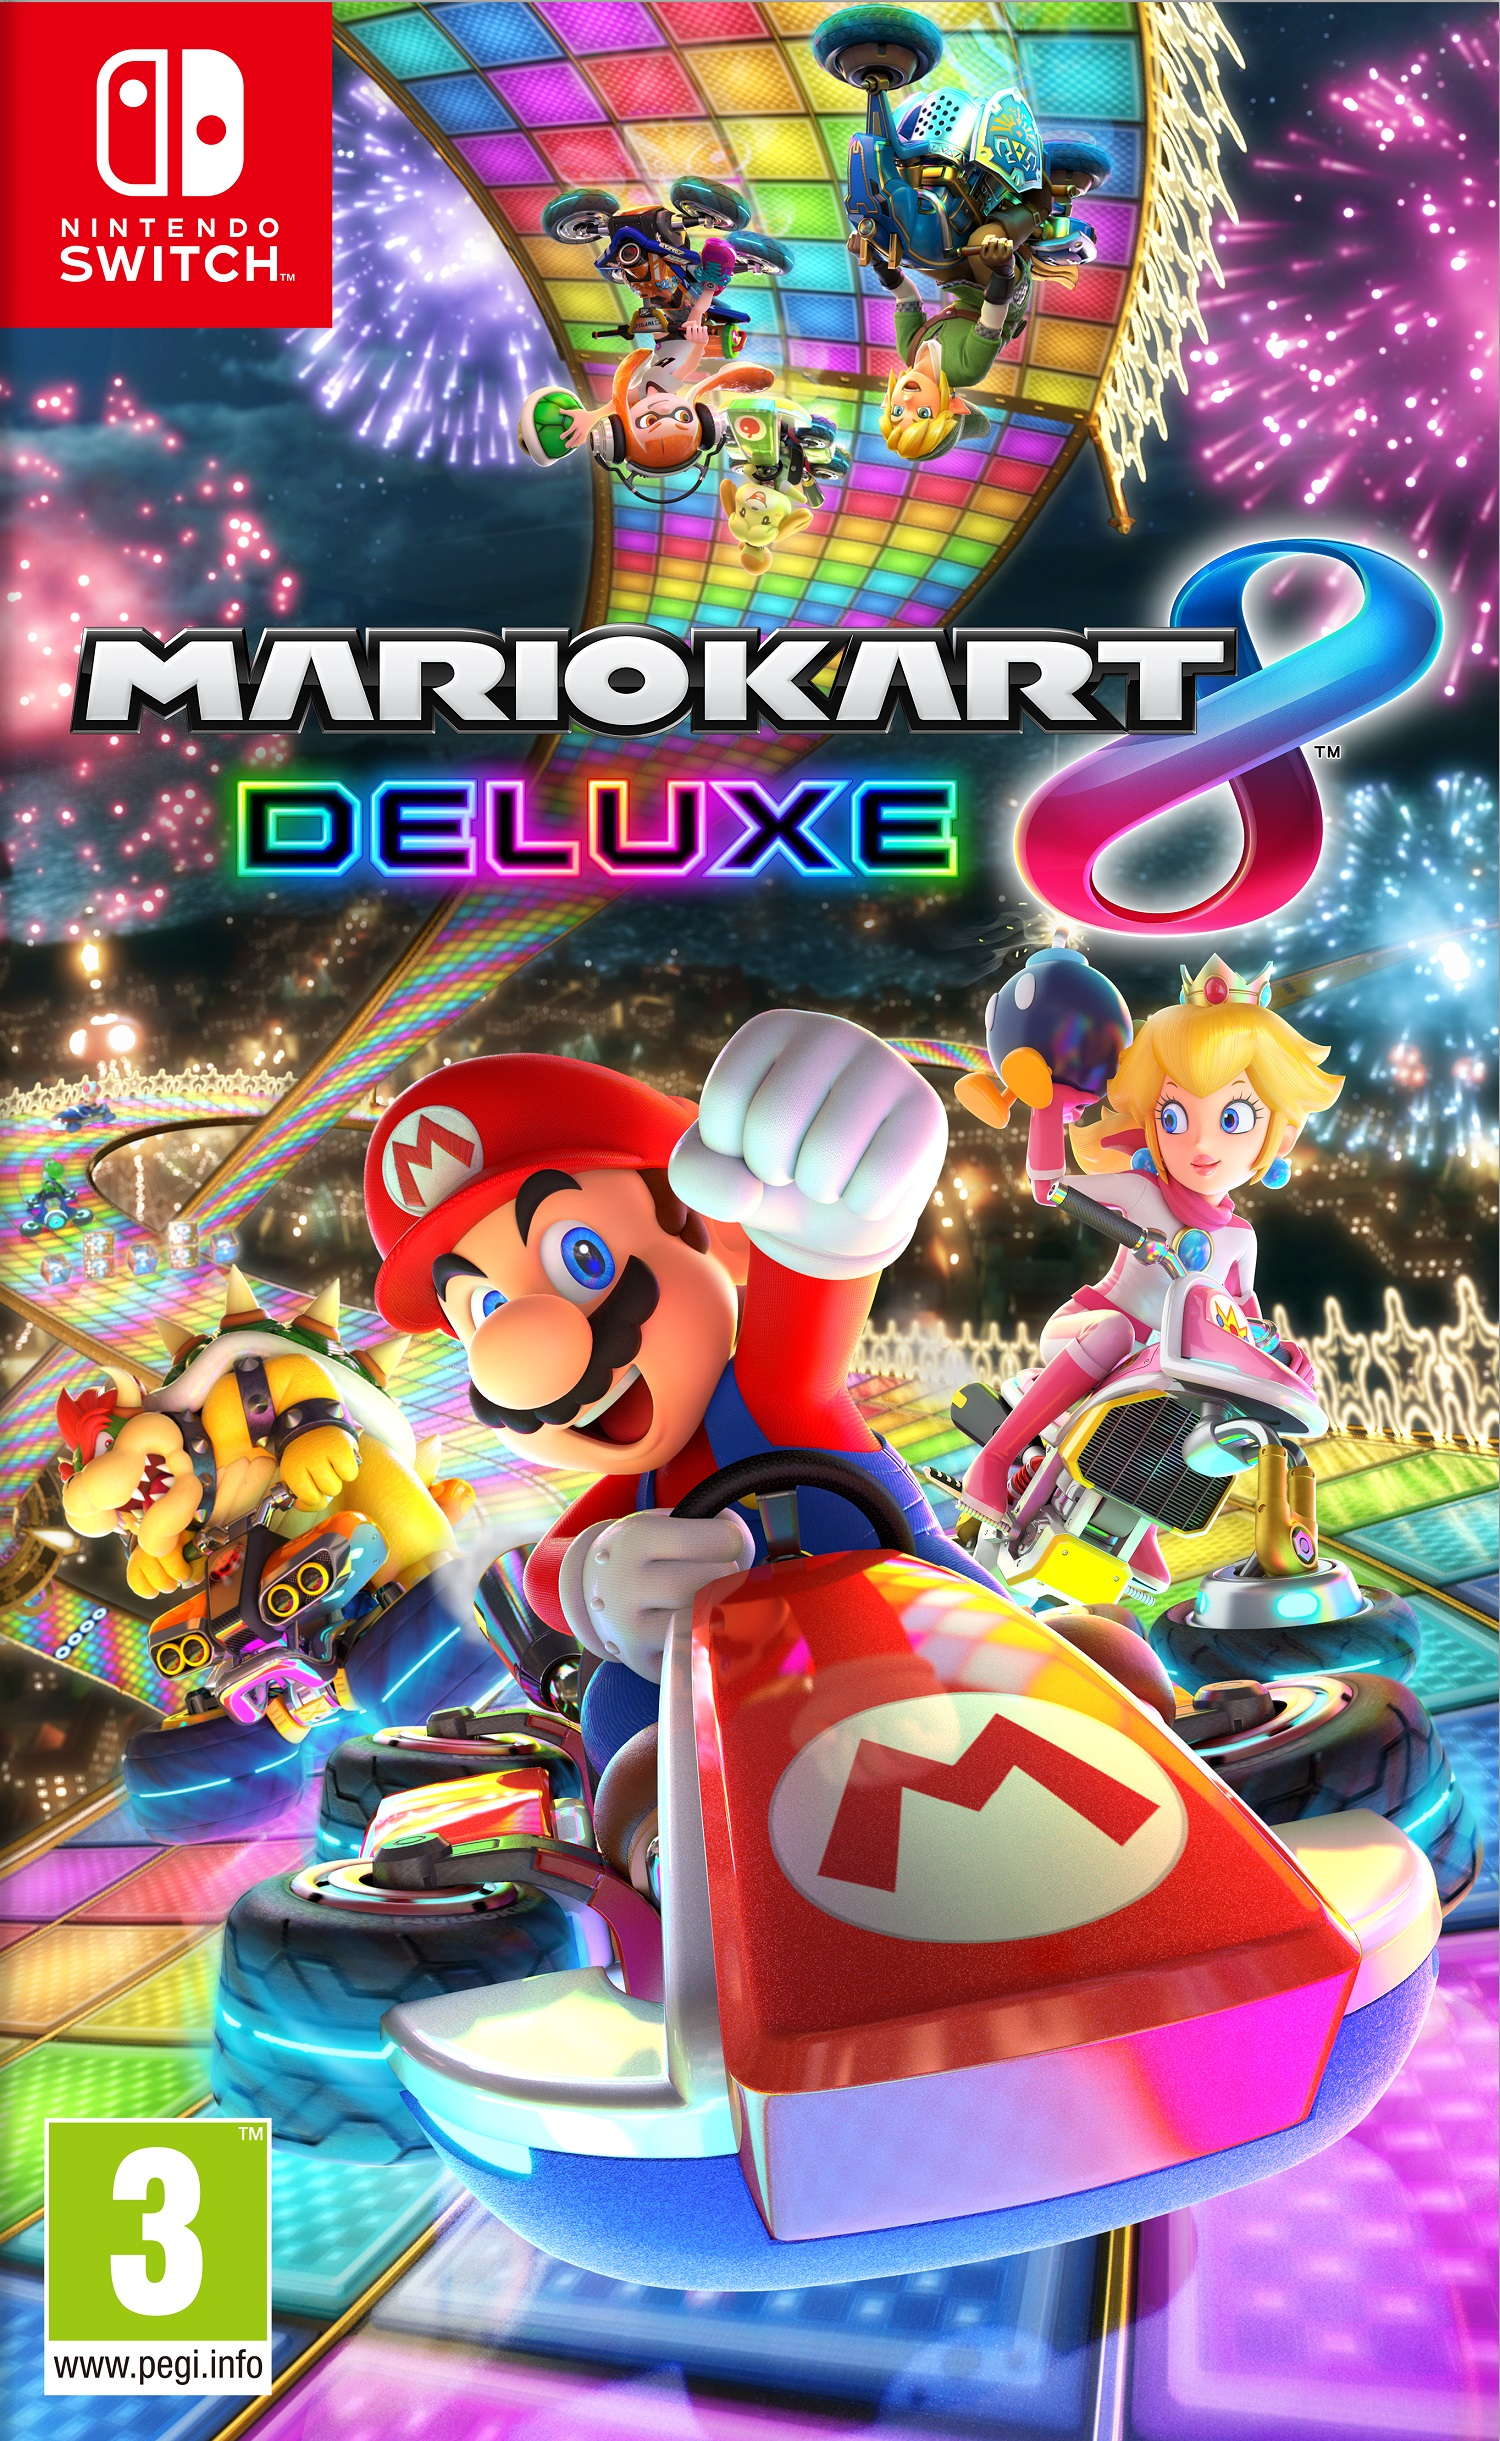 Mario Kart 8 DeLuxe - Nintendo Switch - (Fysieke Game)